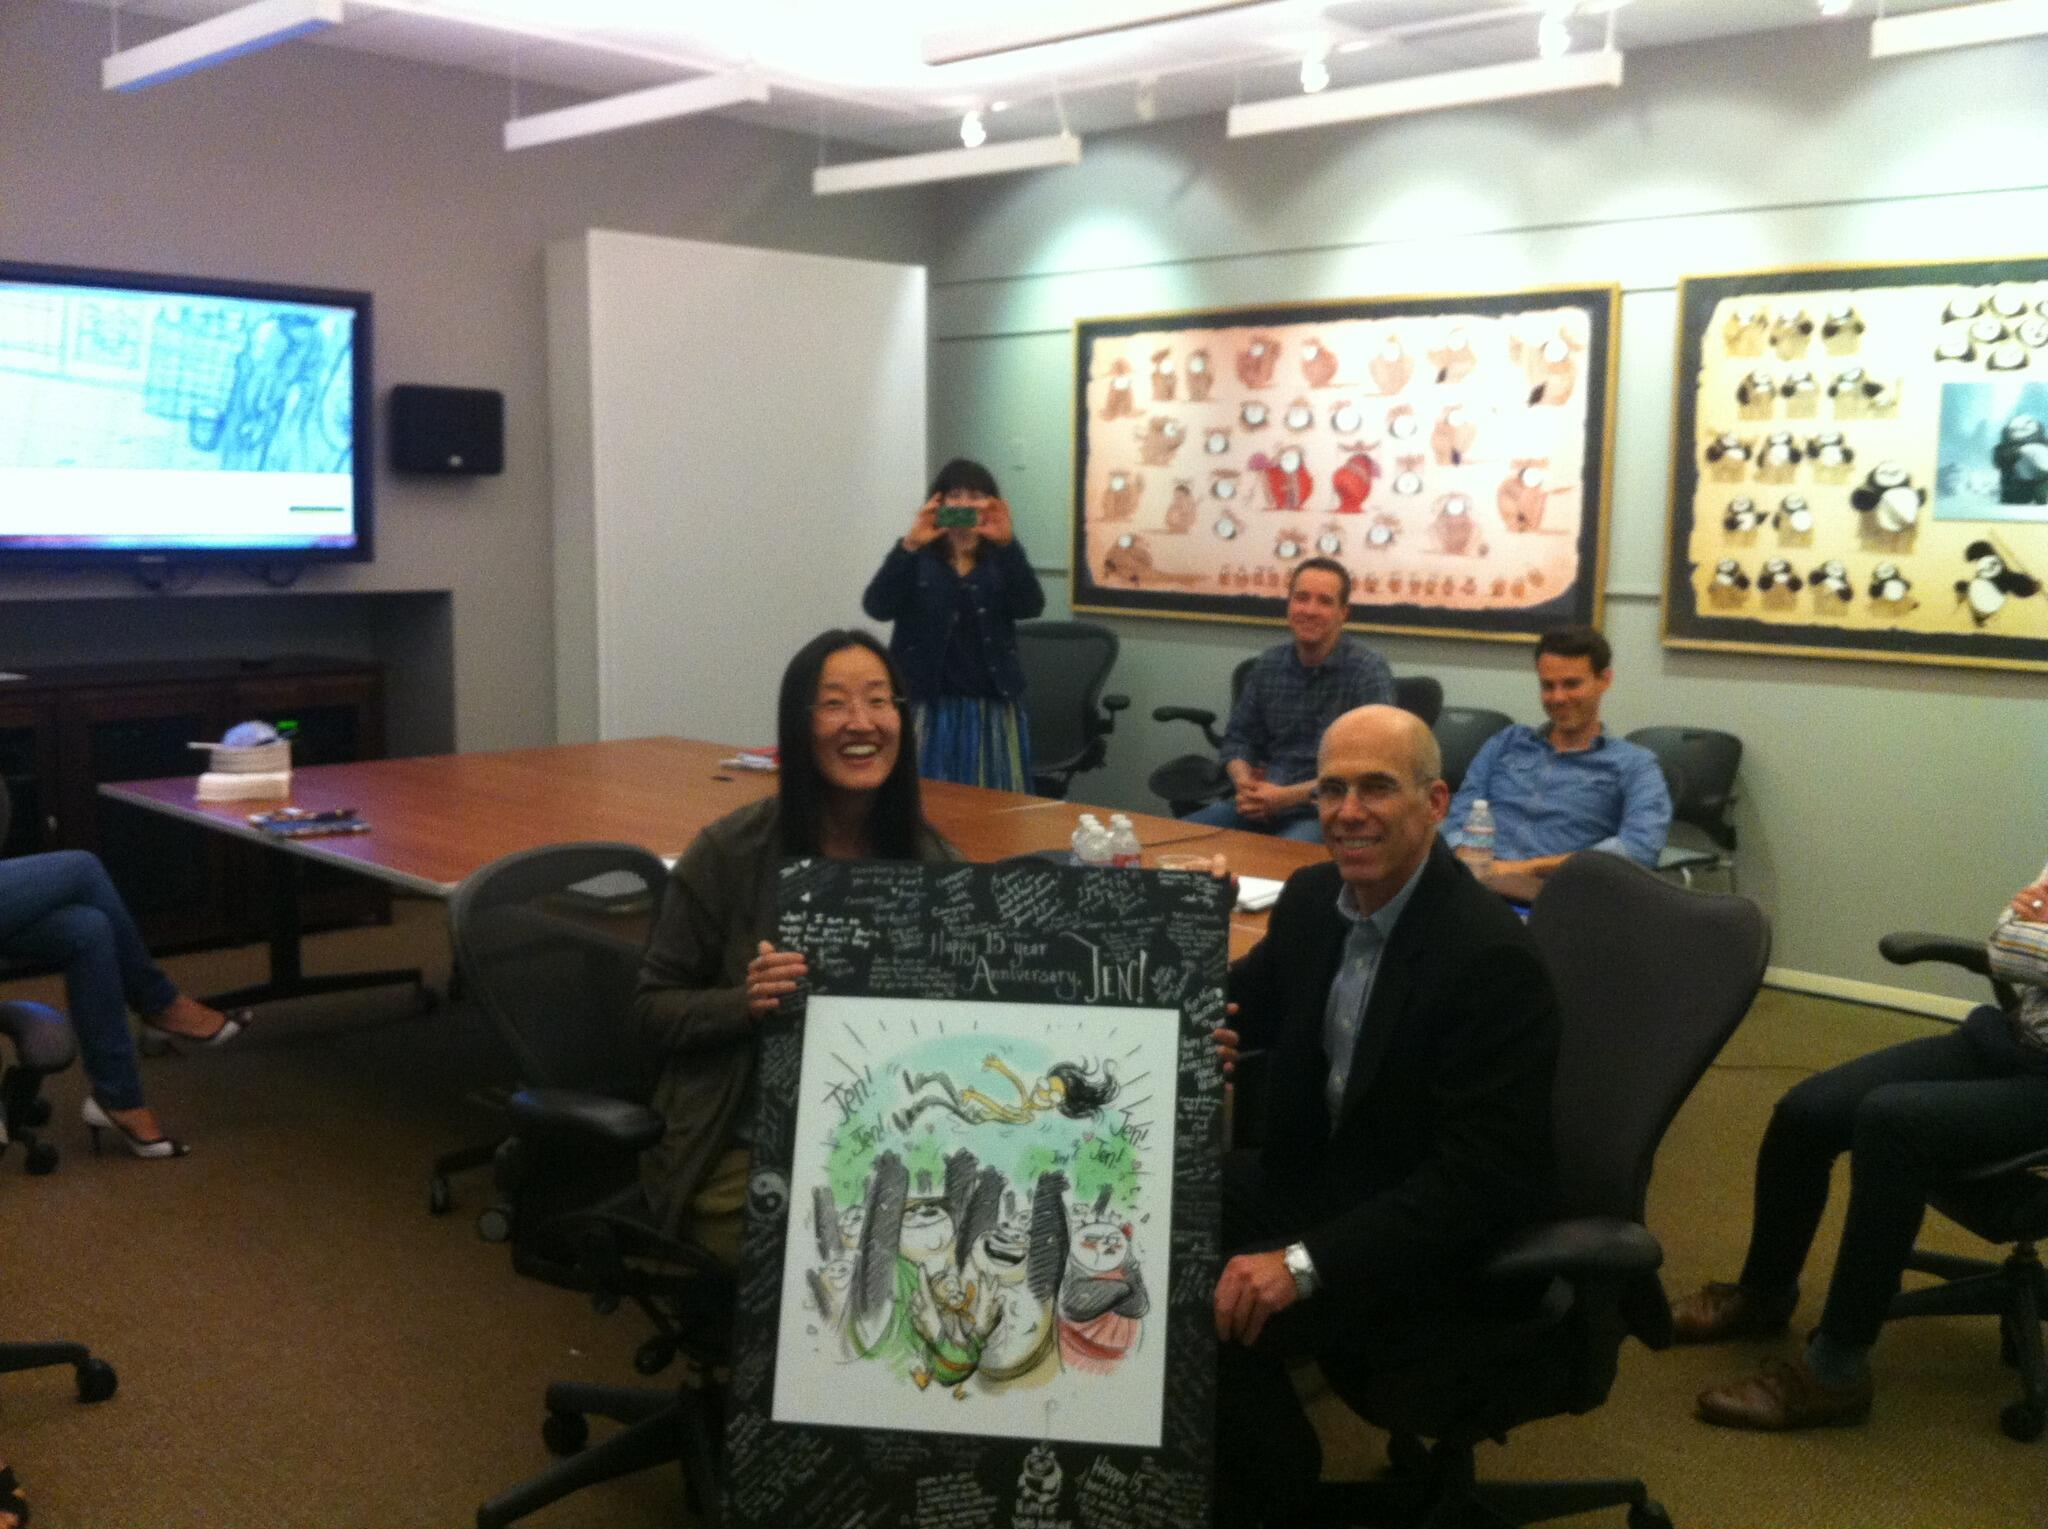 Congrats to #KungFuPanda 2 & 3 director Jennifer Yuh Nelson on 15 AWESOME years here at @DWAnimation! http://t.co/TyGVOQnASv